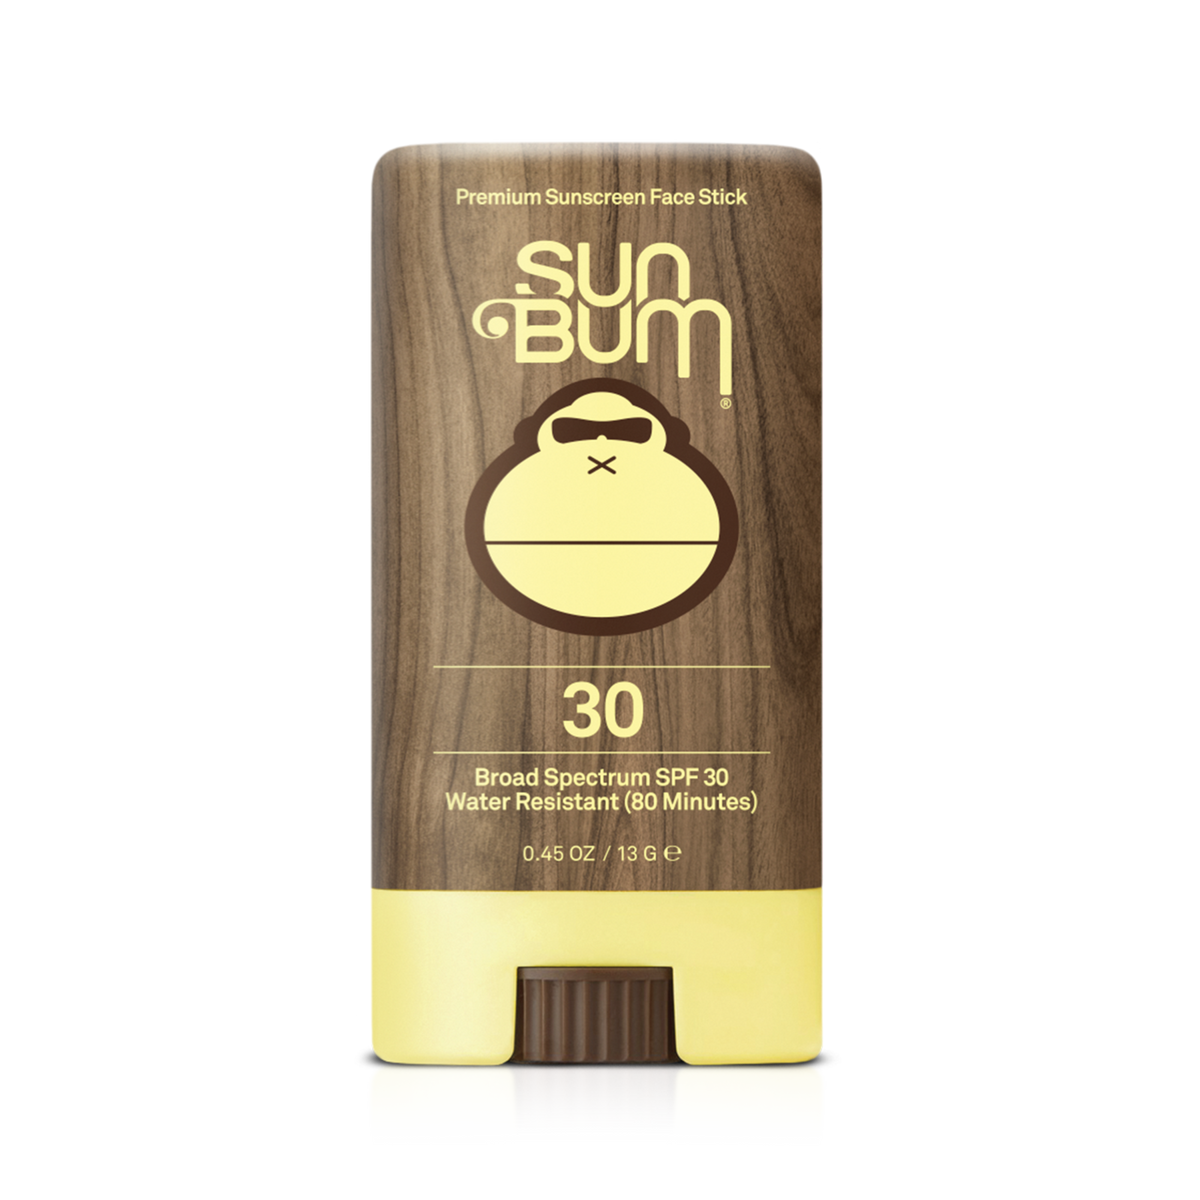 sun bum | spf 30 original face stick - KISS AND MAKEUP